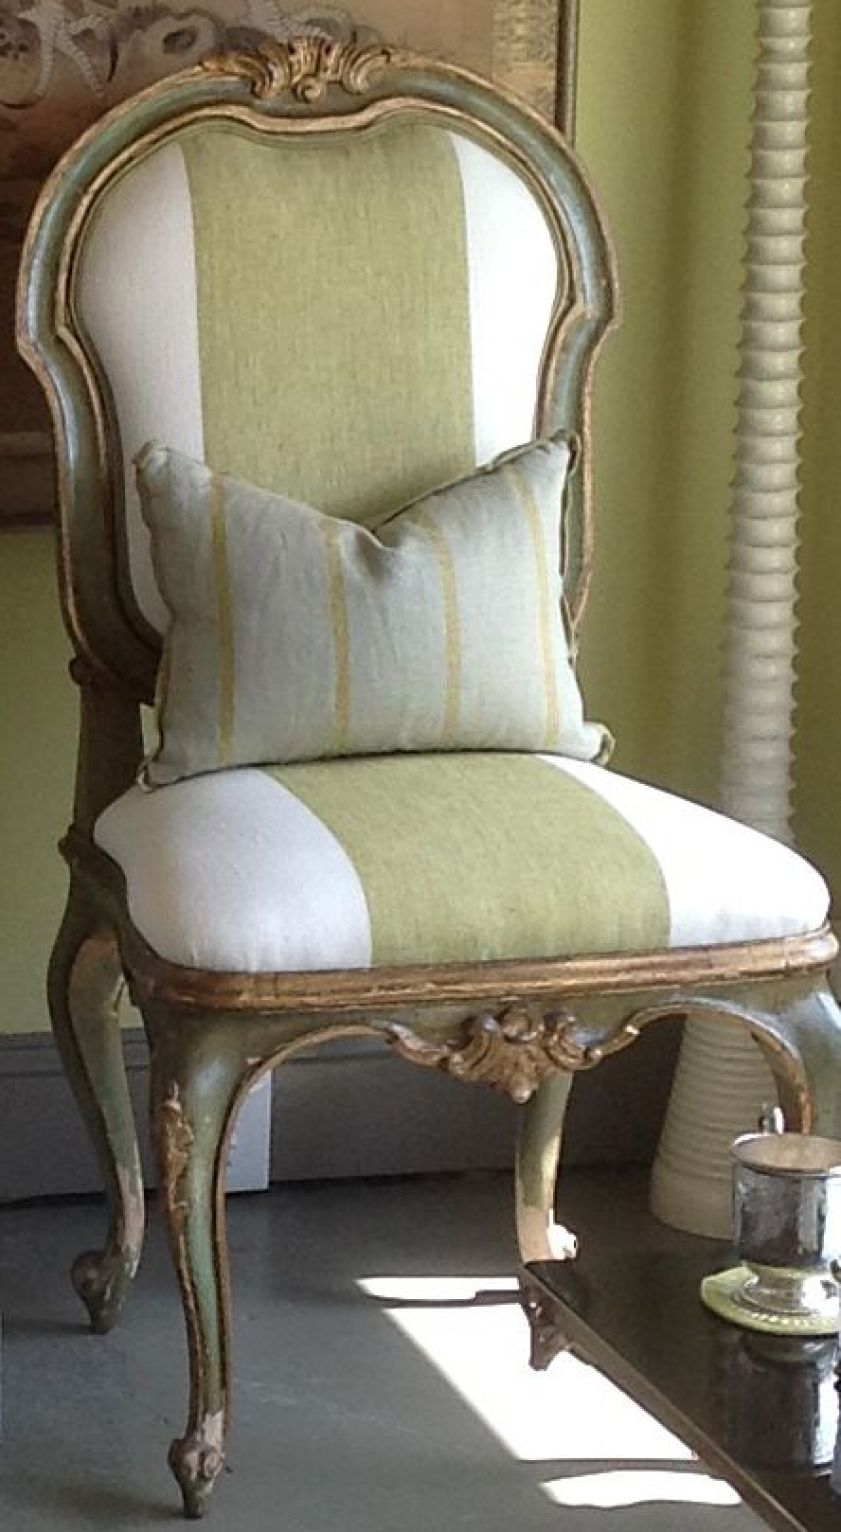 Ten Ways To Make A Granny Chair Look Hip Cindy